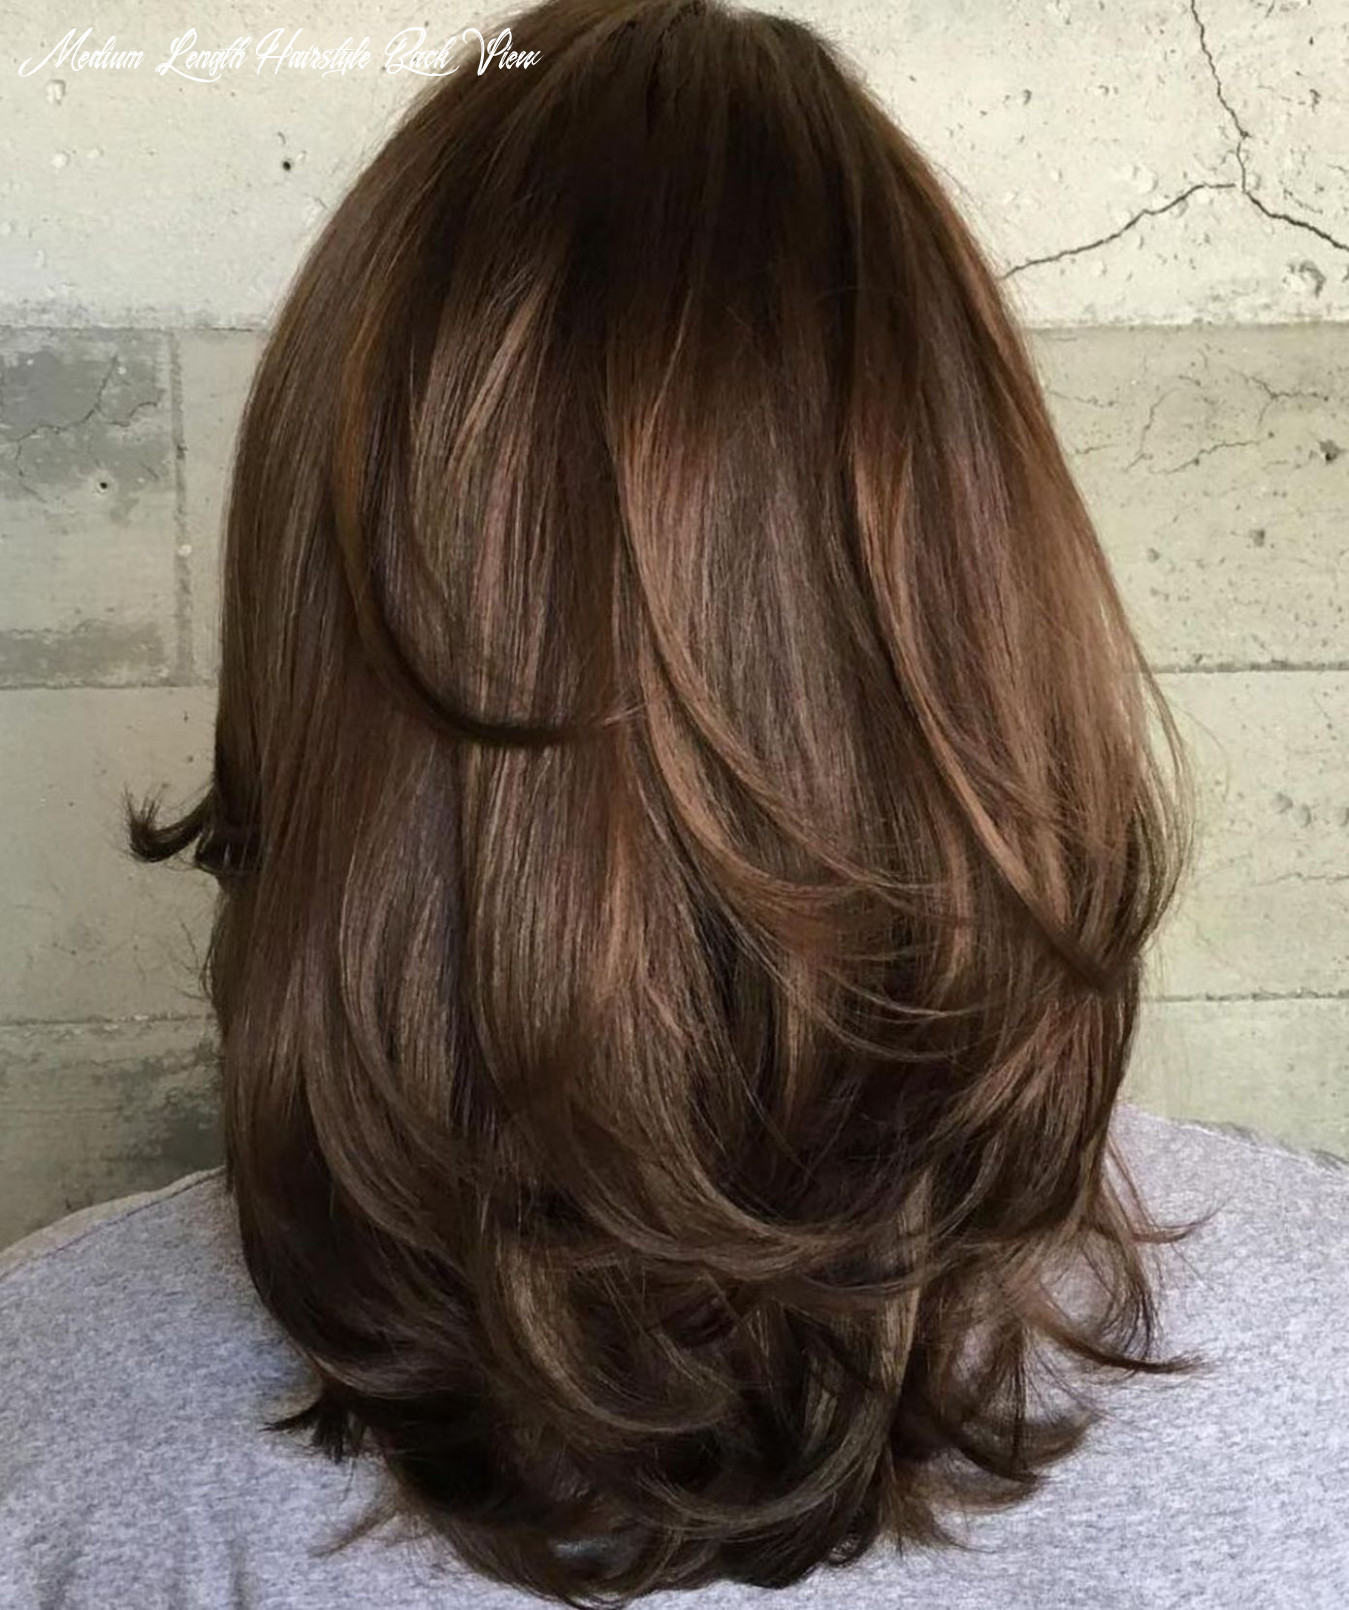 Pin on hairstyles medium length hairstyle back view